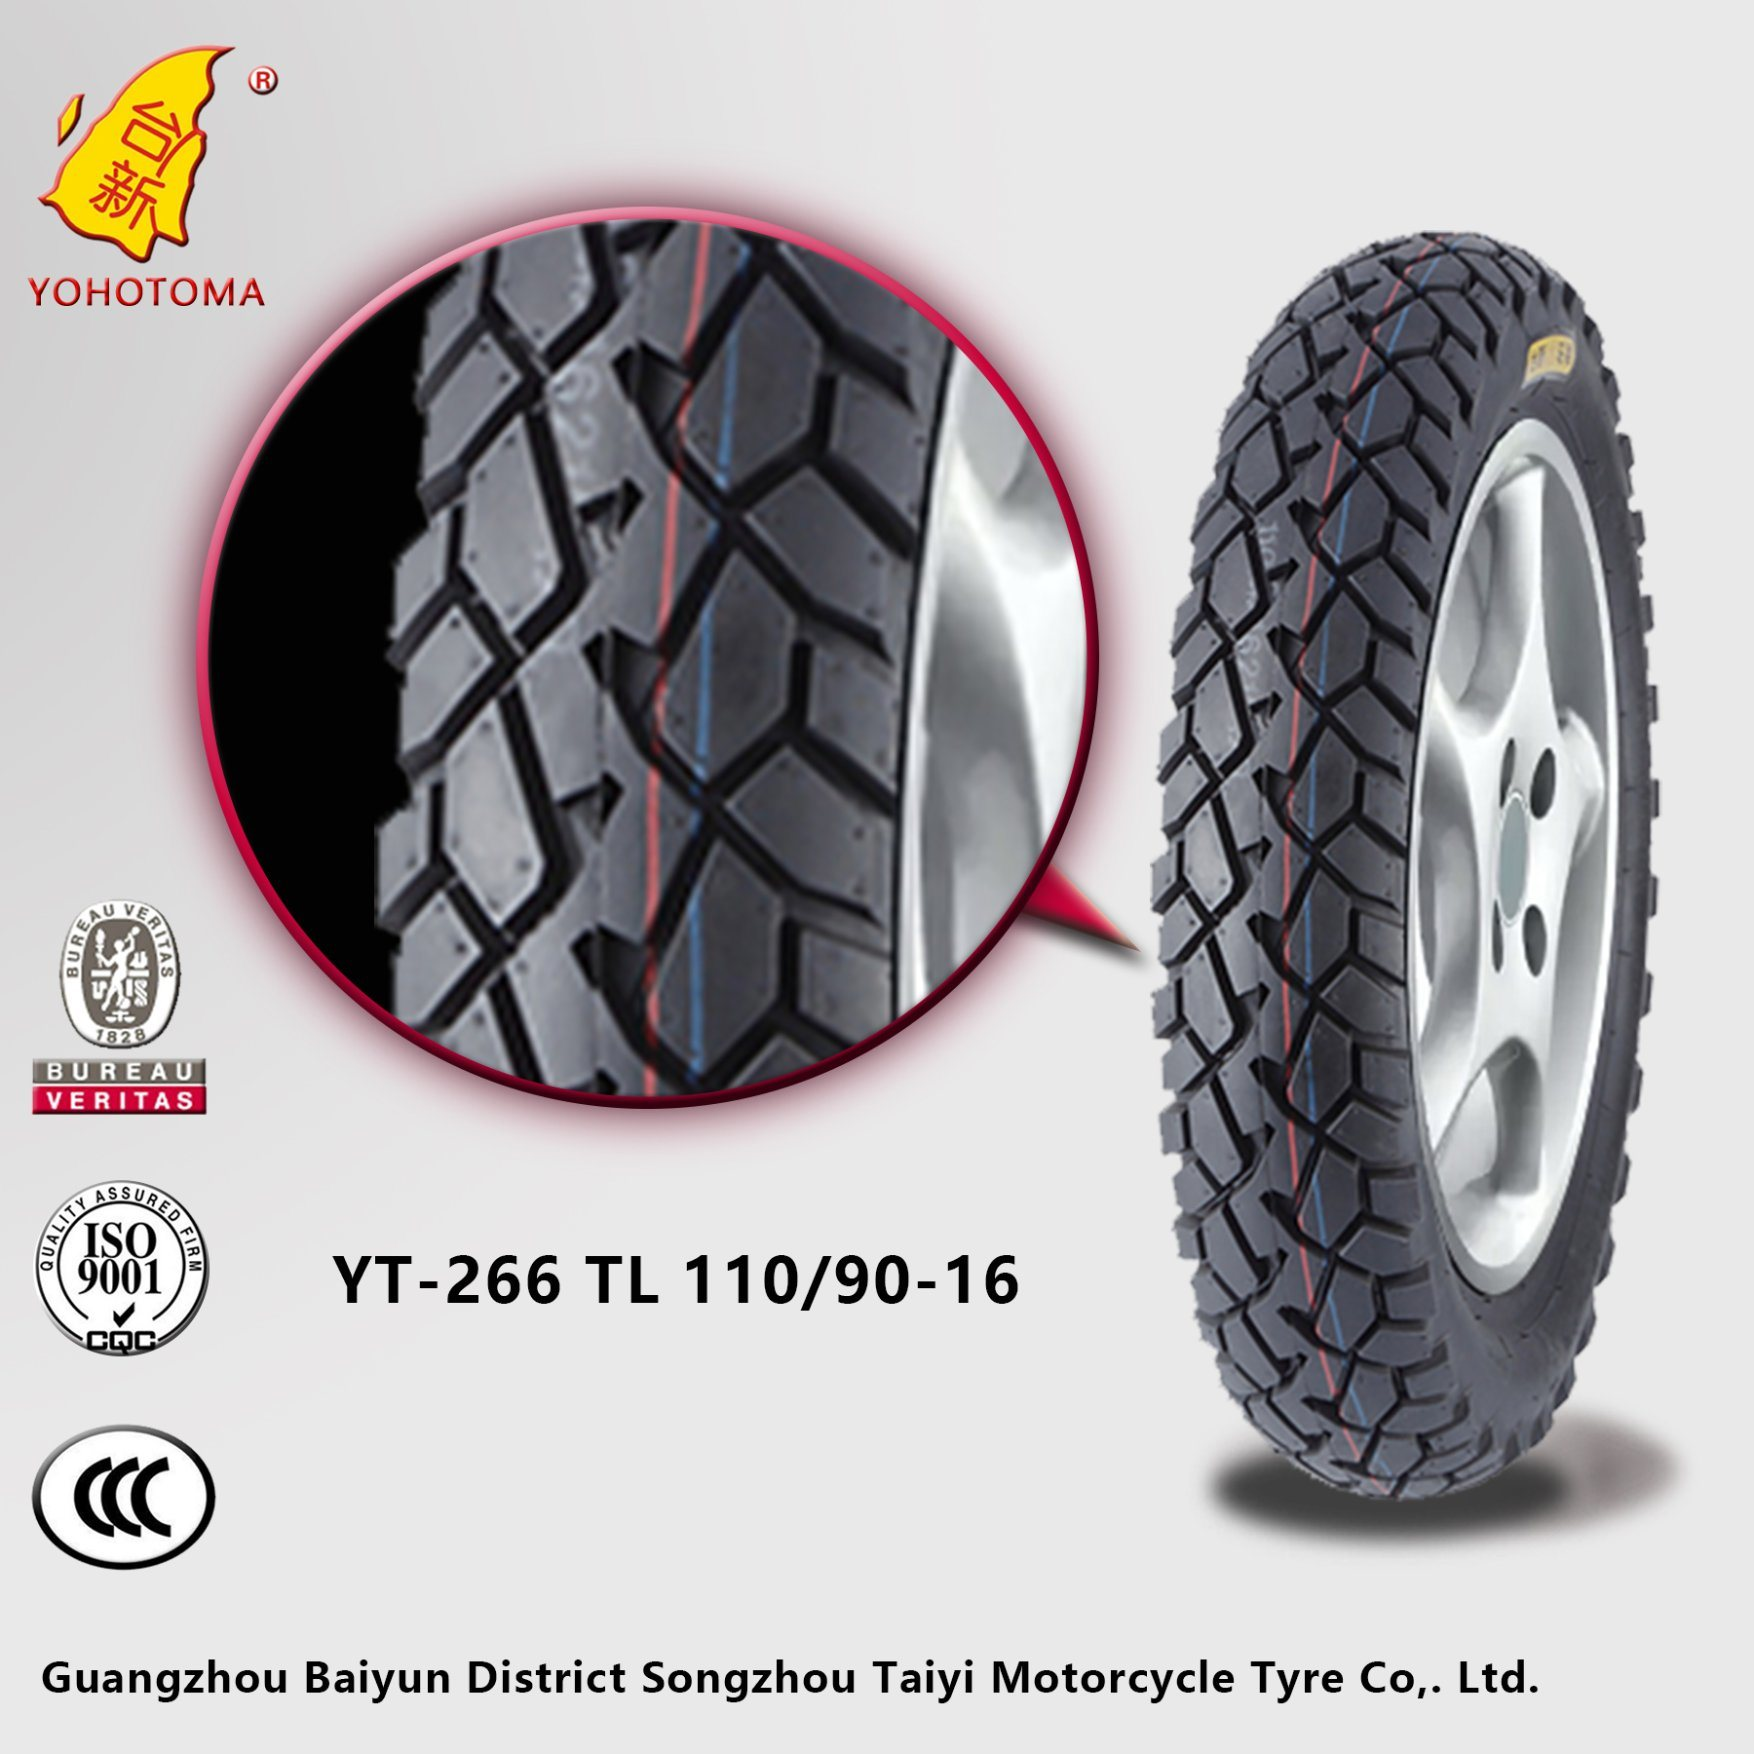 Top Quality Motorcycle Bike Tire Tyre Yohotoma Tire (Yt-266 Tl 110/90-16)